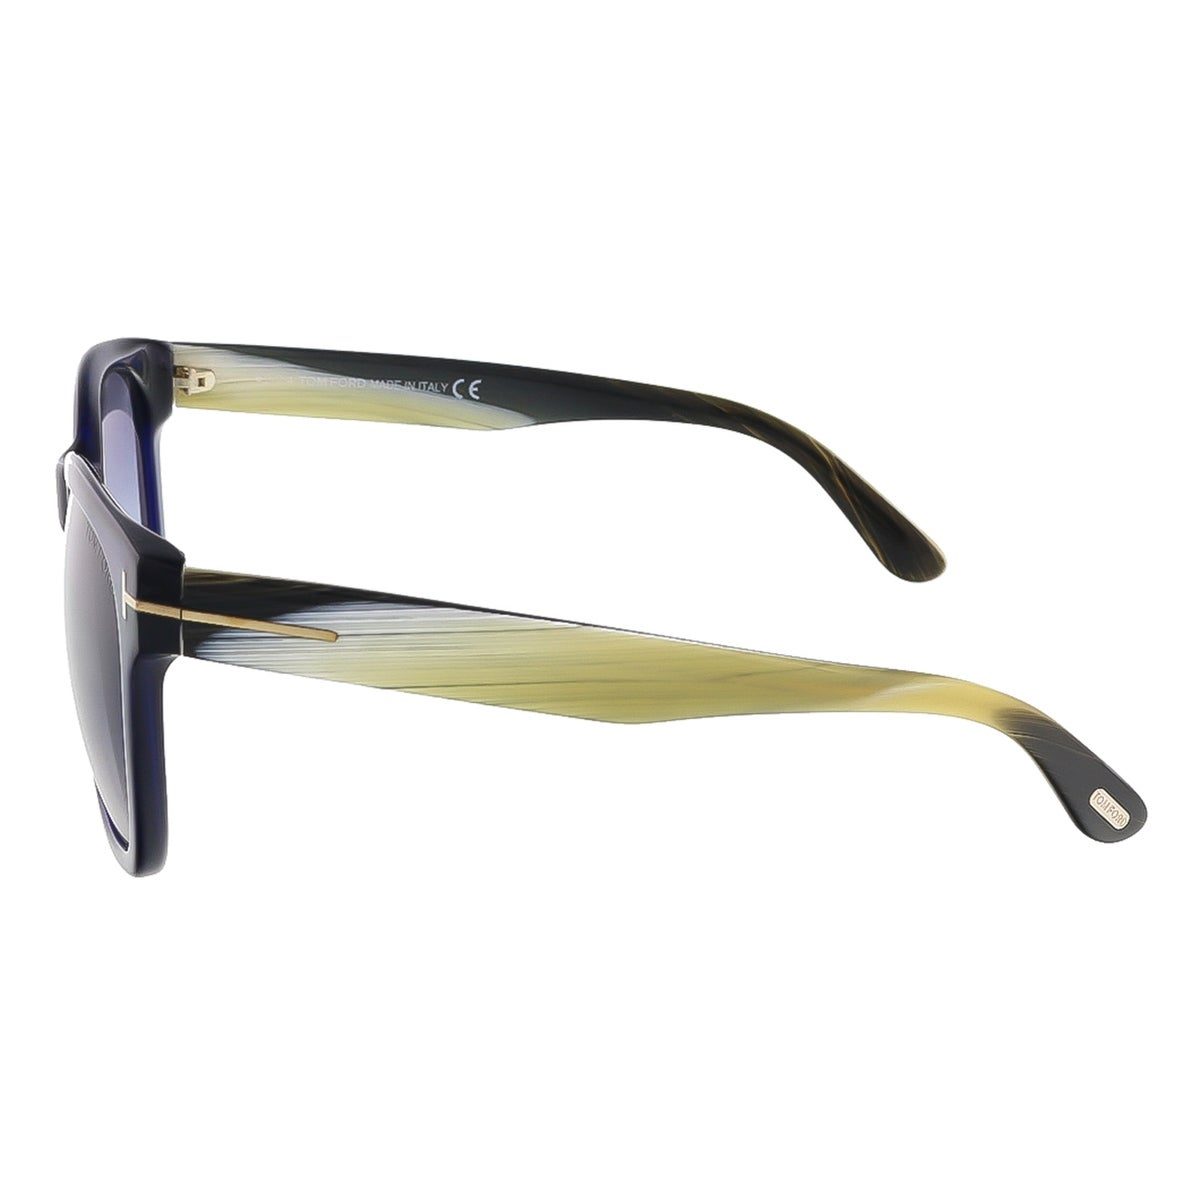 1484da1e91 Shop Tom Ford FT0395 S 89W Cooper Navy Blue Rectangle Sunglasses -  57-17-145 - Free Shipping Today - Overstock - 13318306